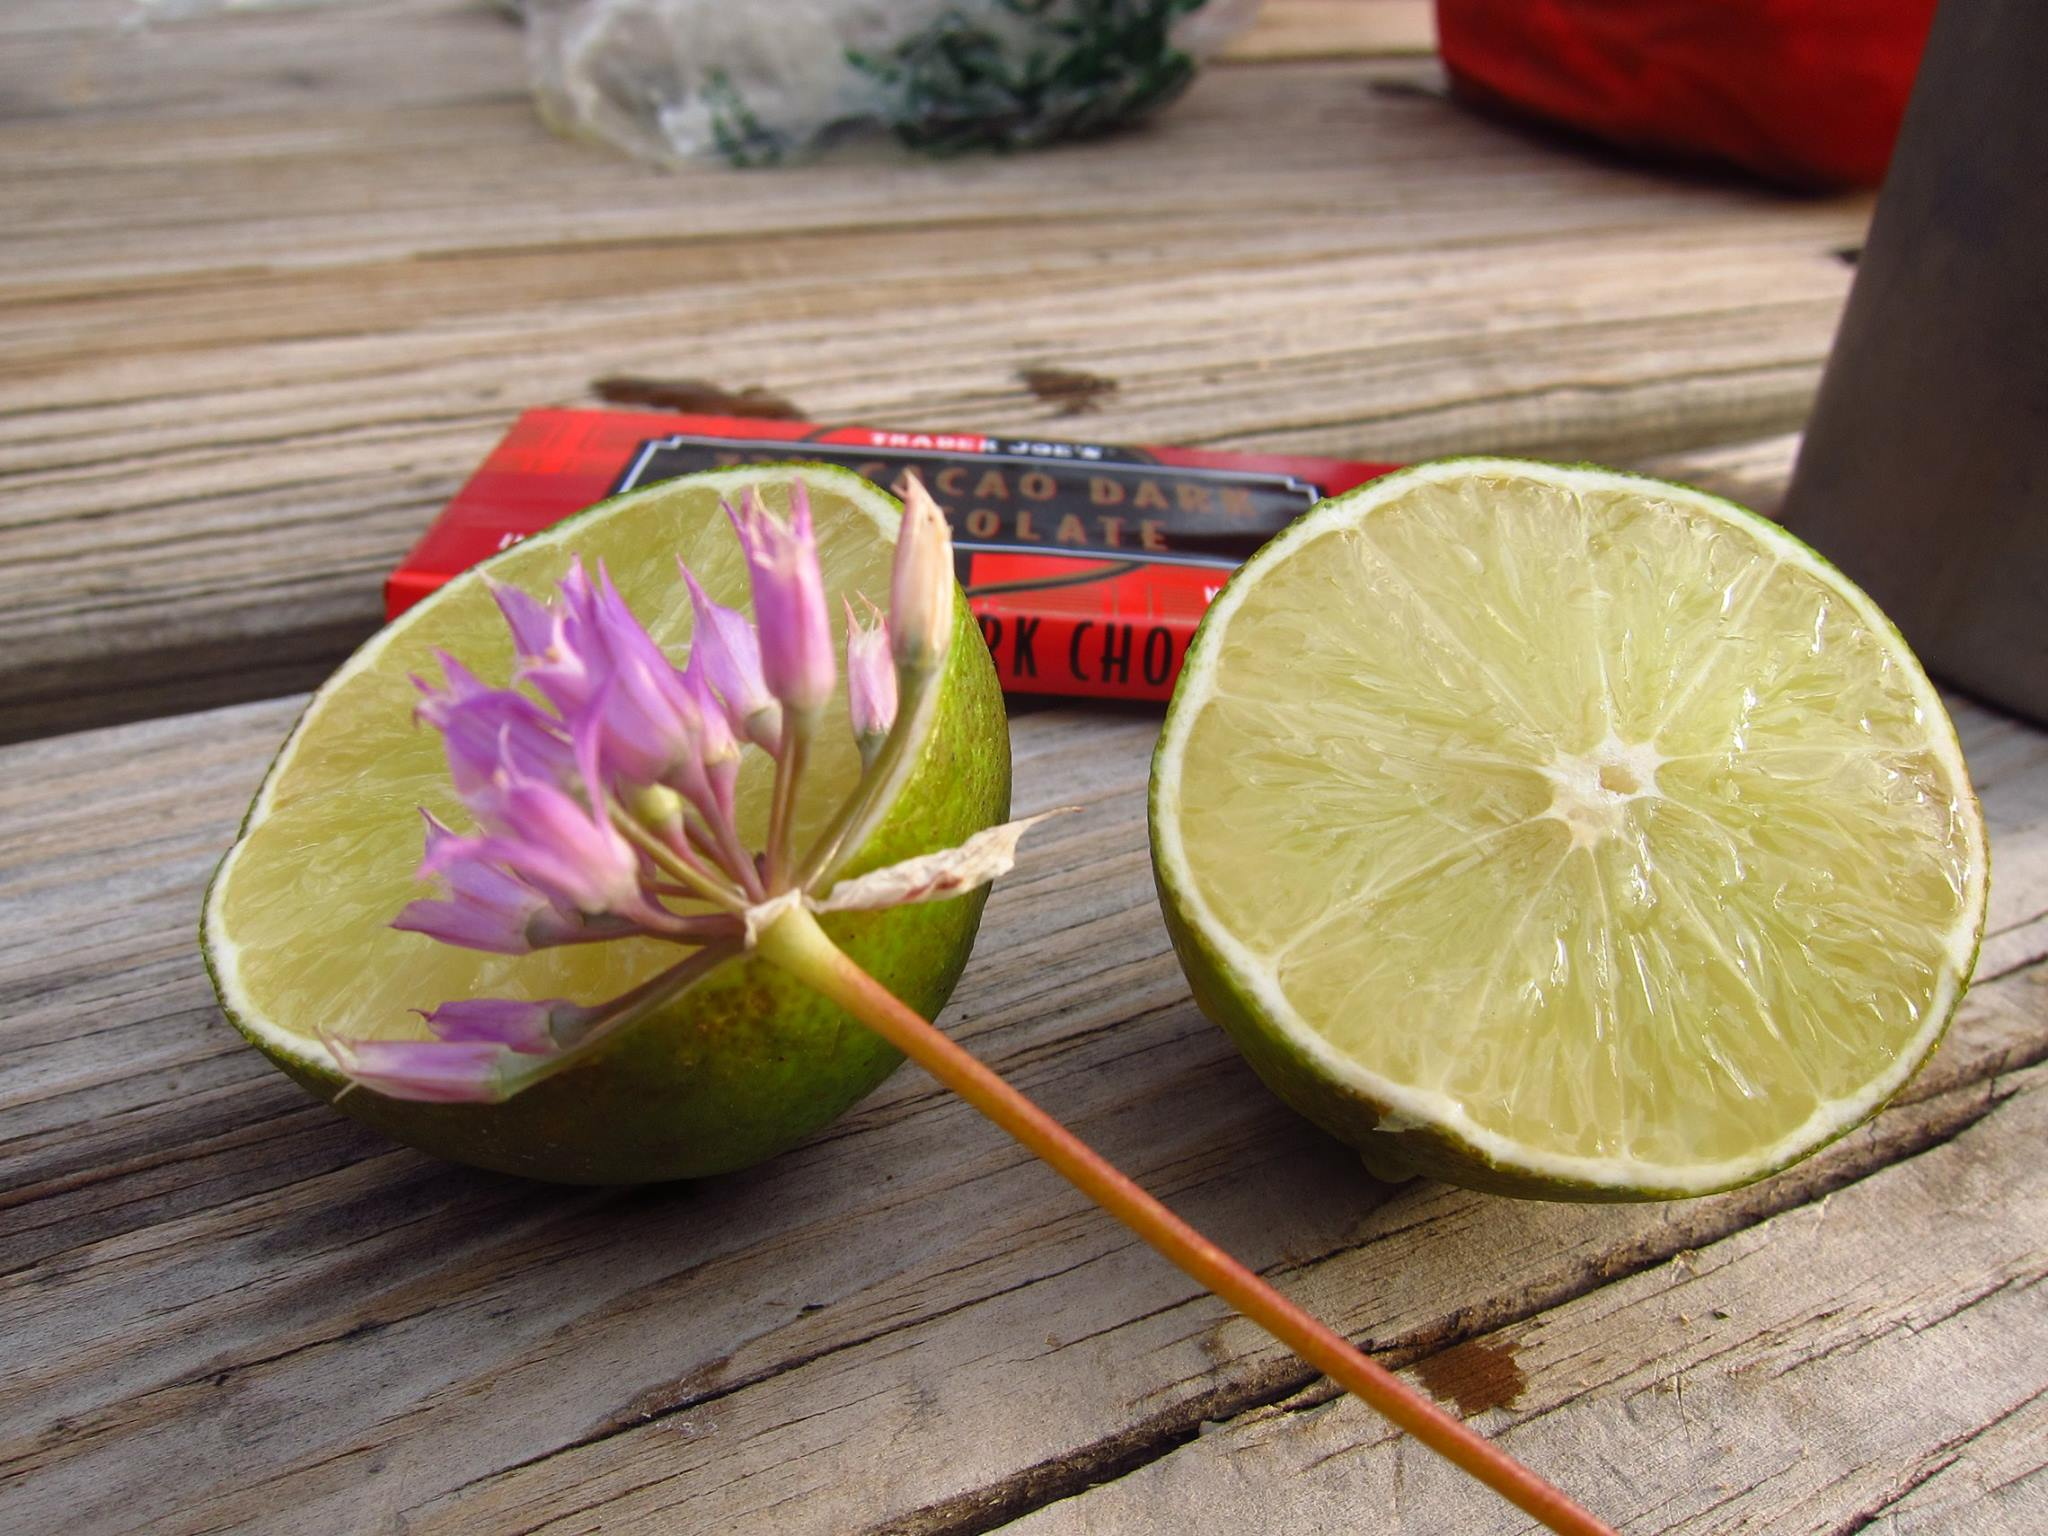 limes and wild onions